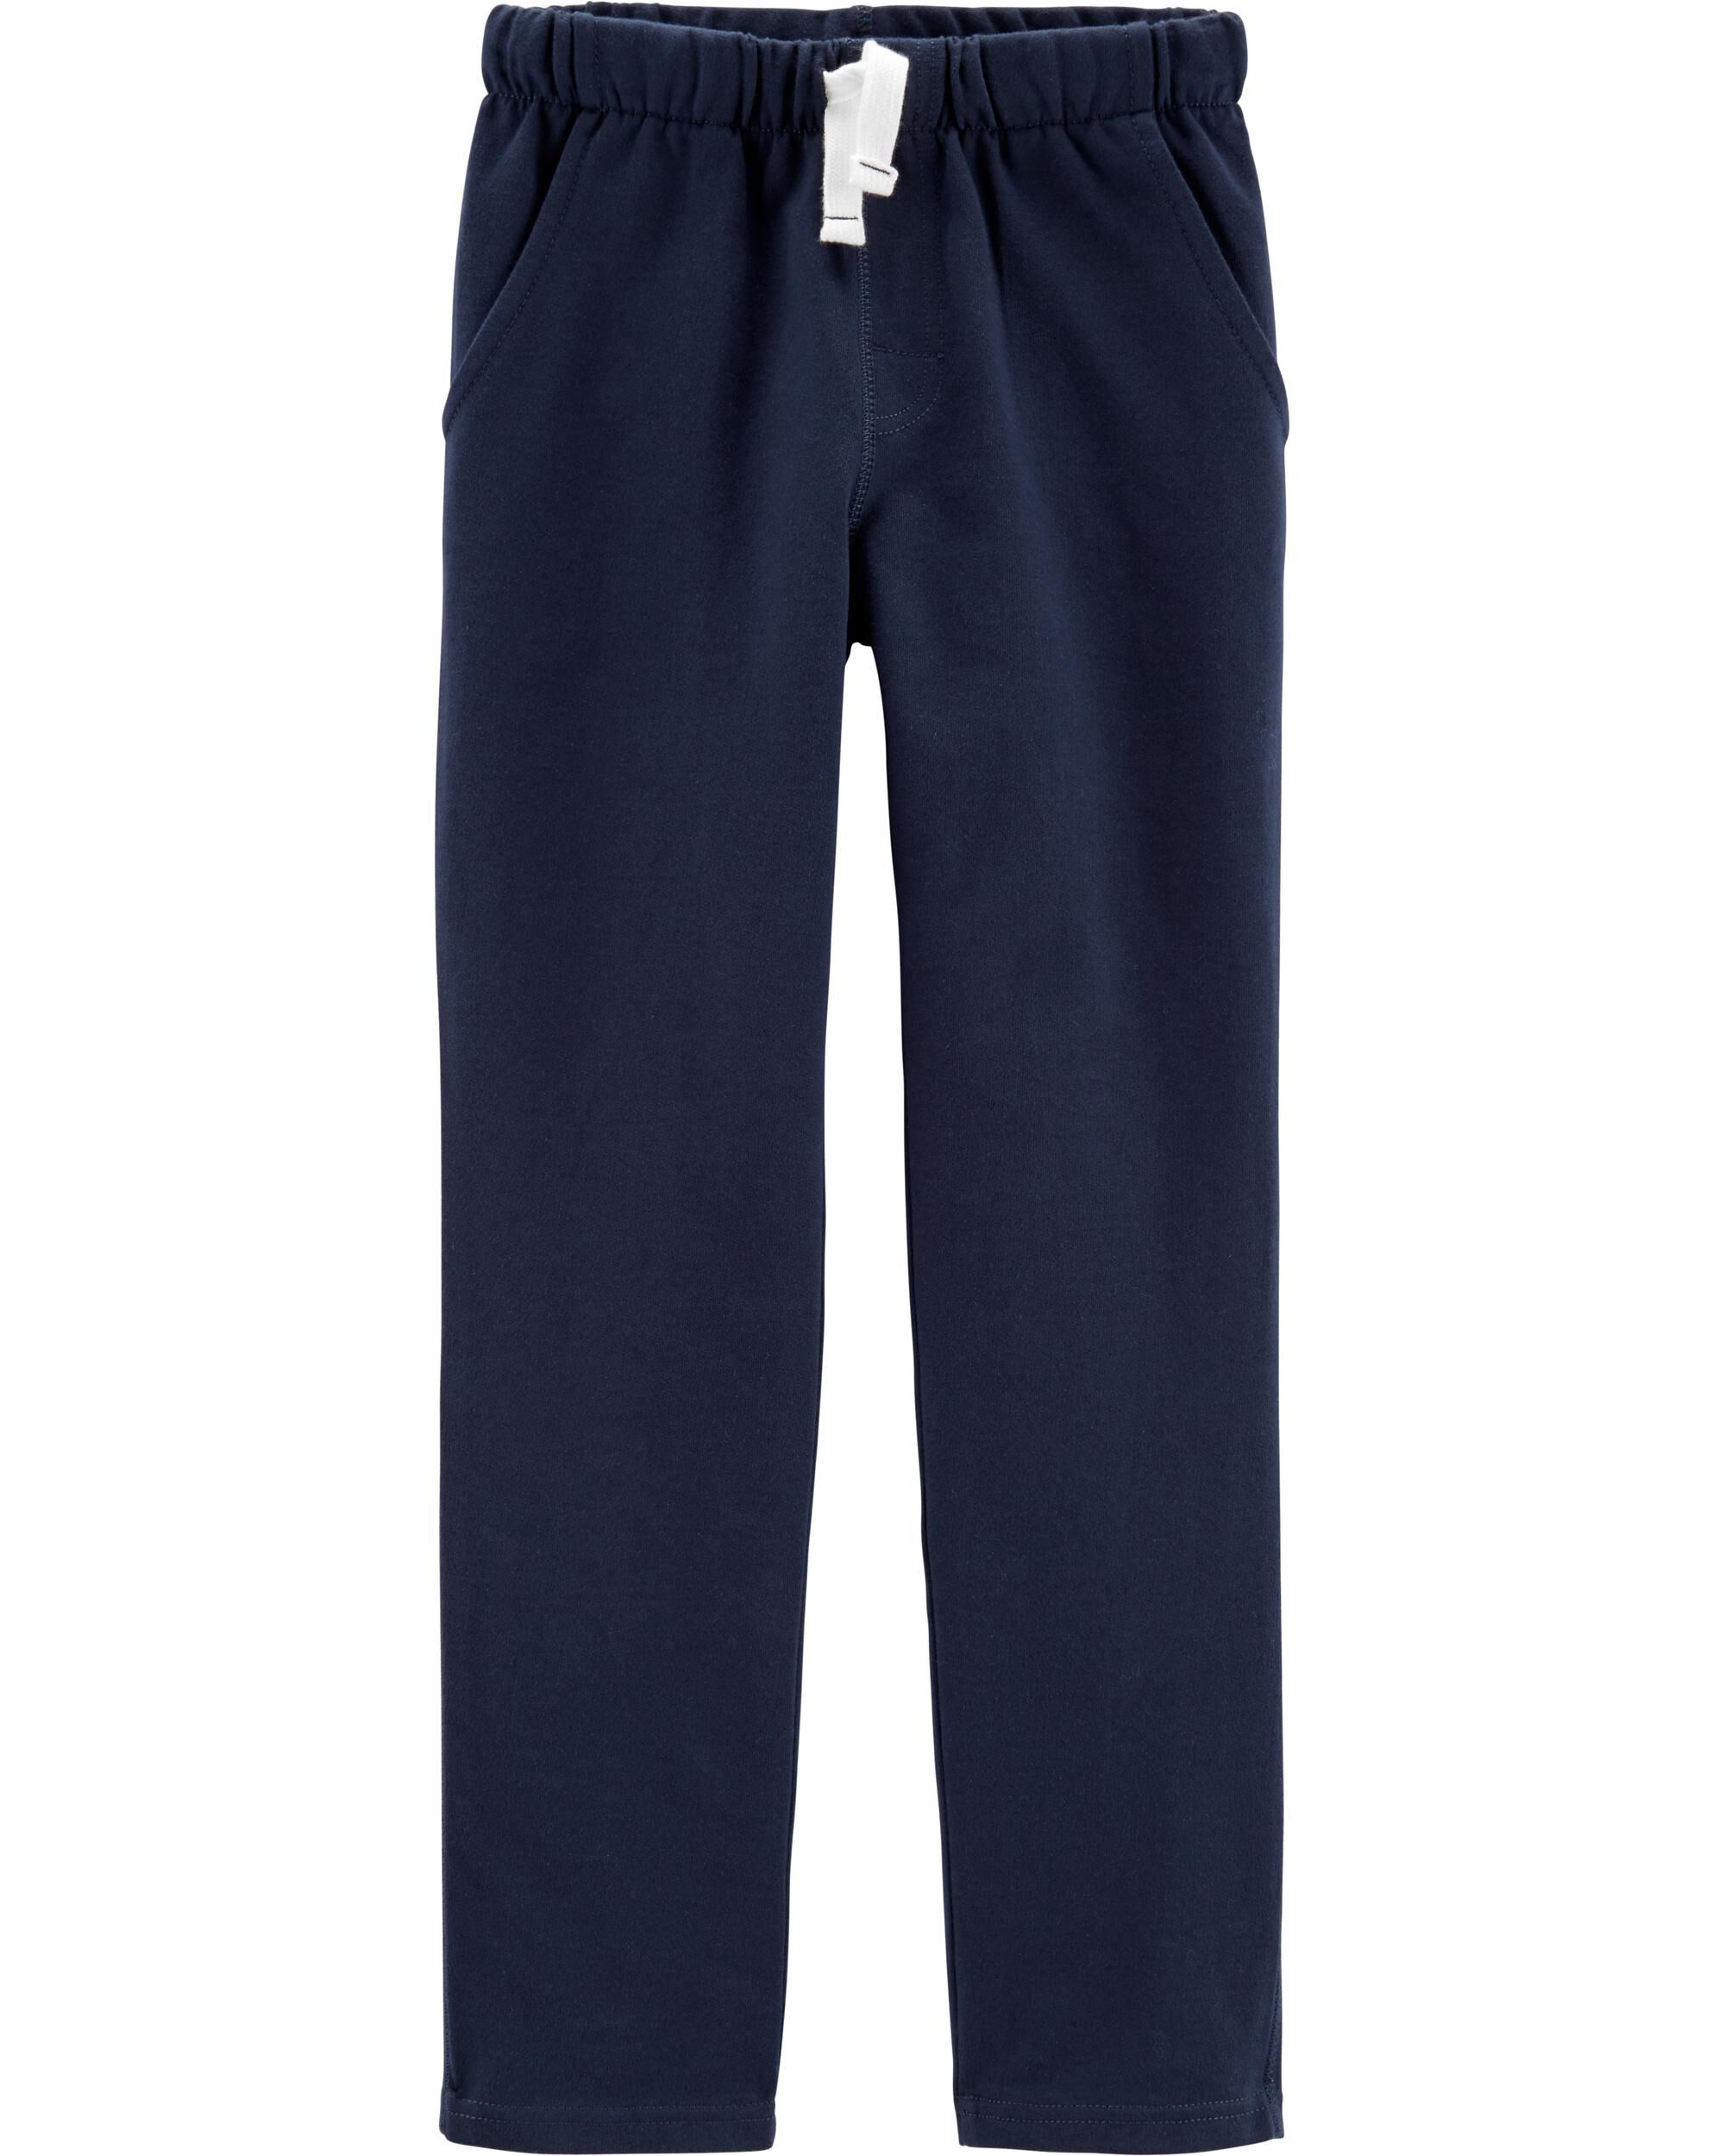 *DOORBUSTER* Pull-On French Terry Pants